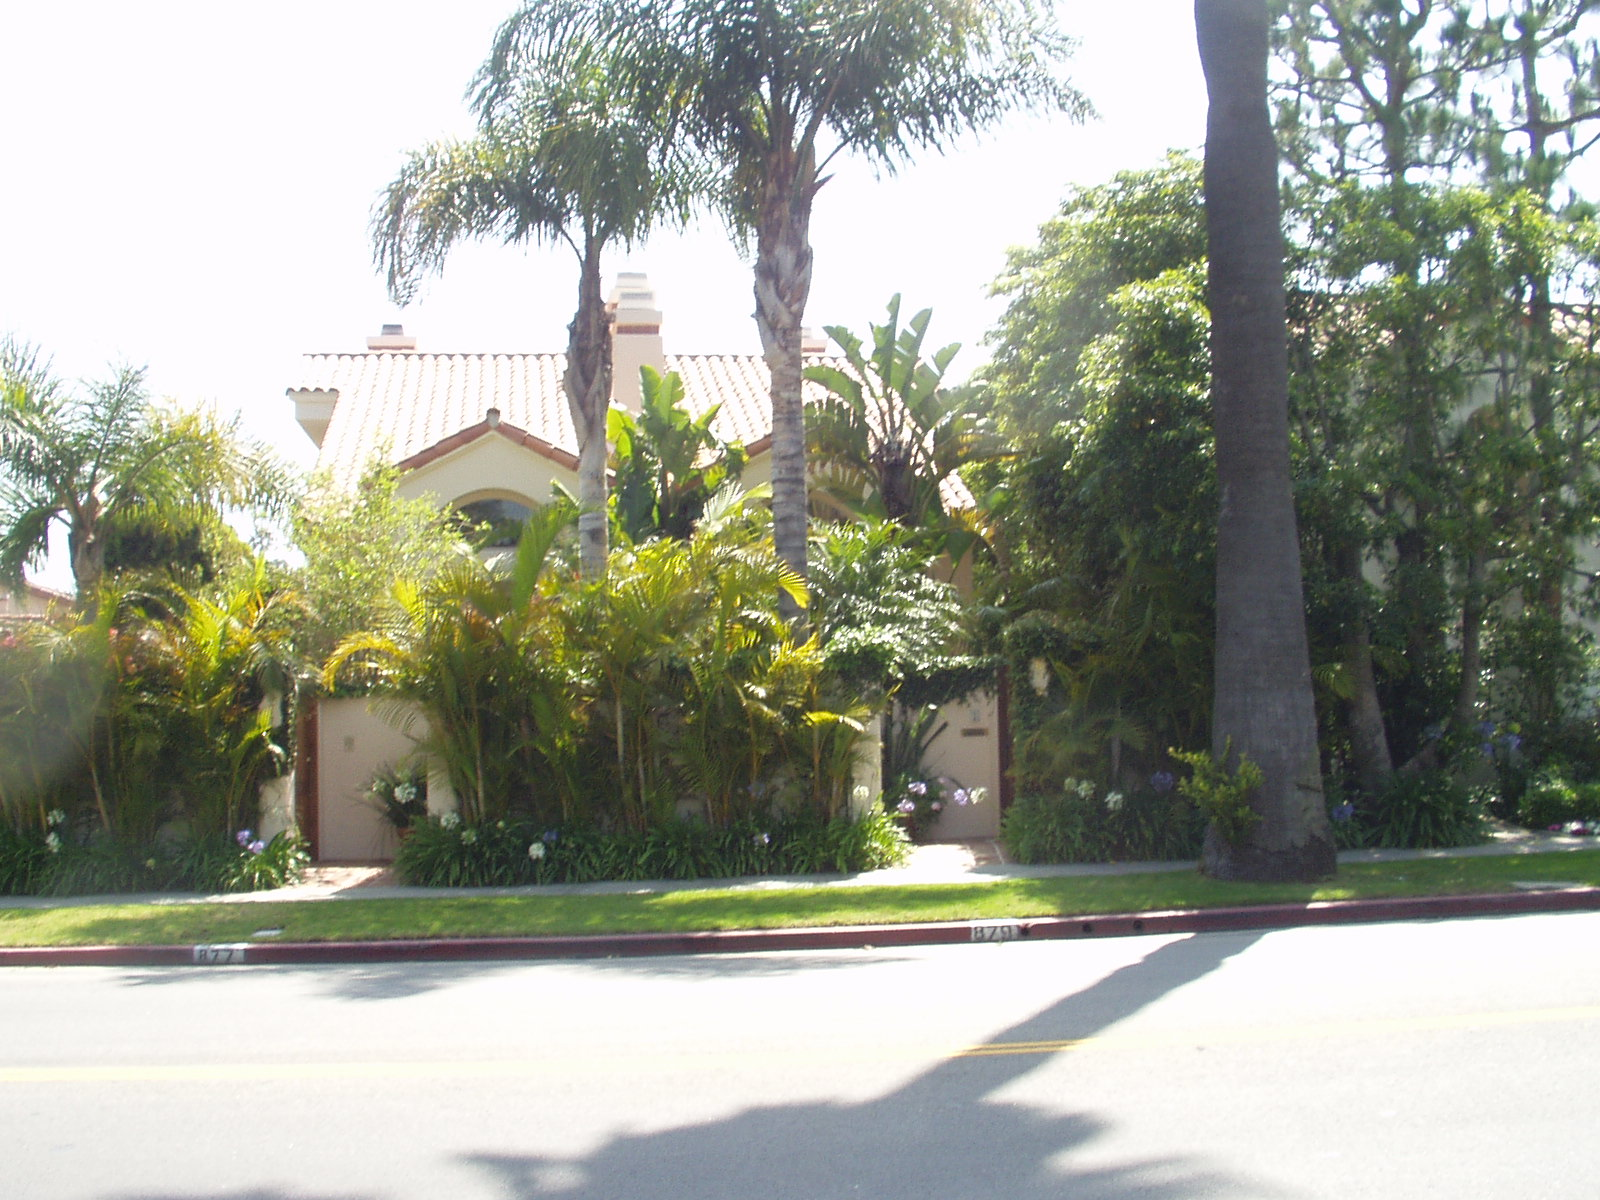 malibu and surrounding area driveways of the rich and